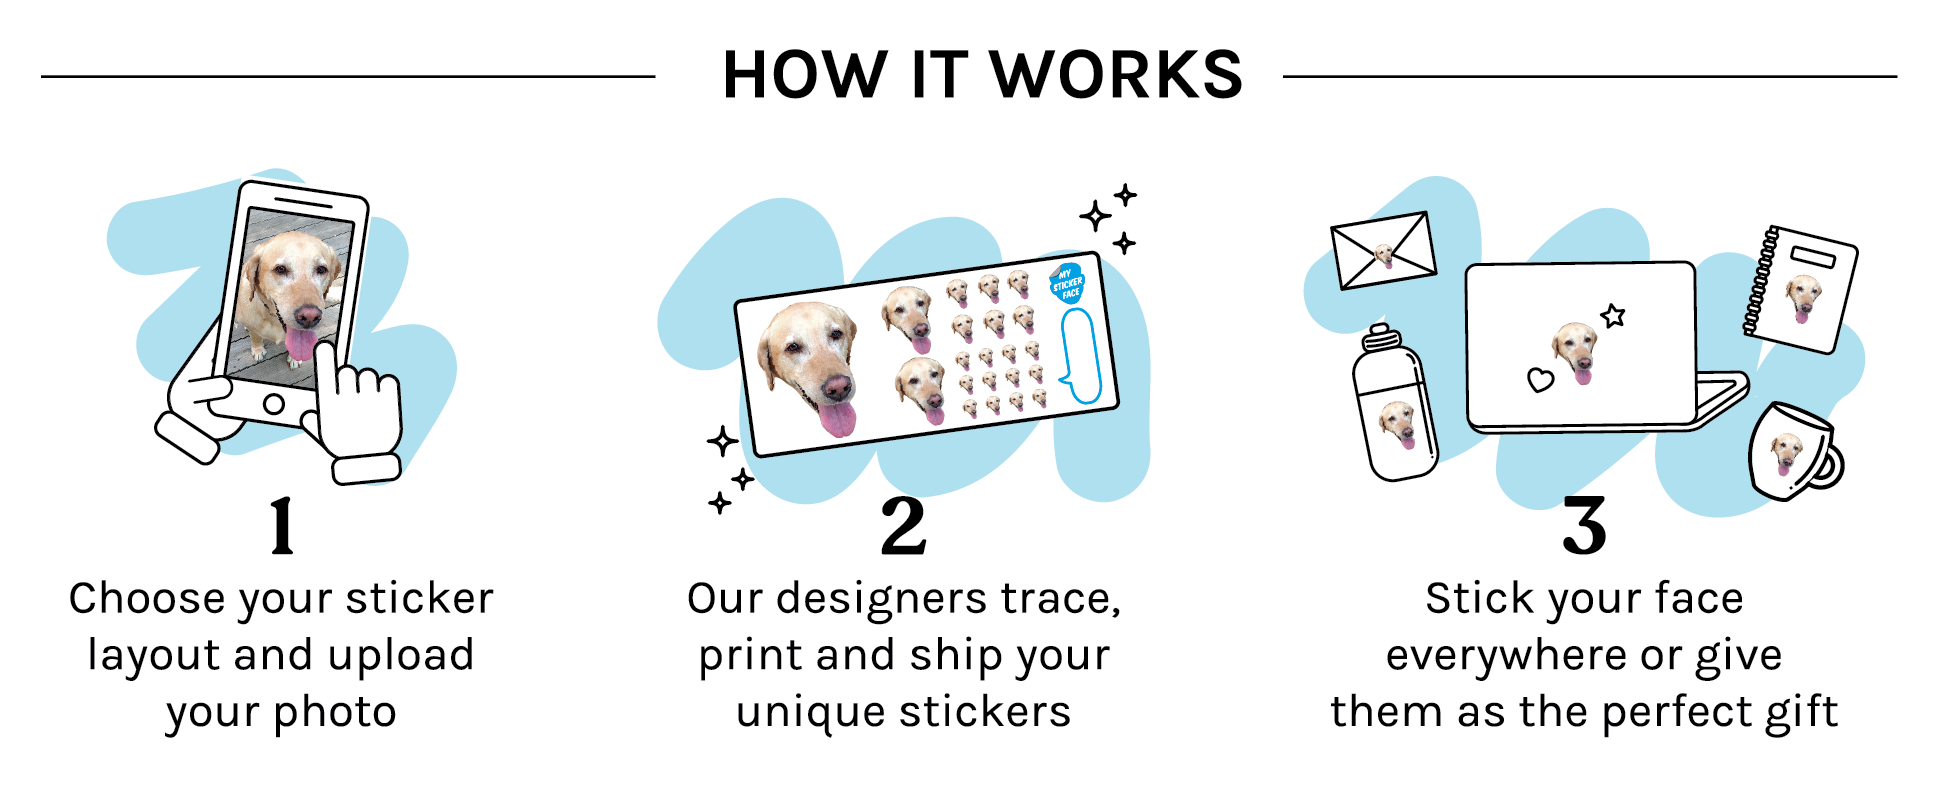 Turn your favorite faces into custom vinyl stickers you can stick anywhere